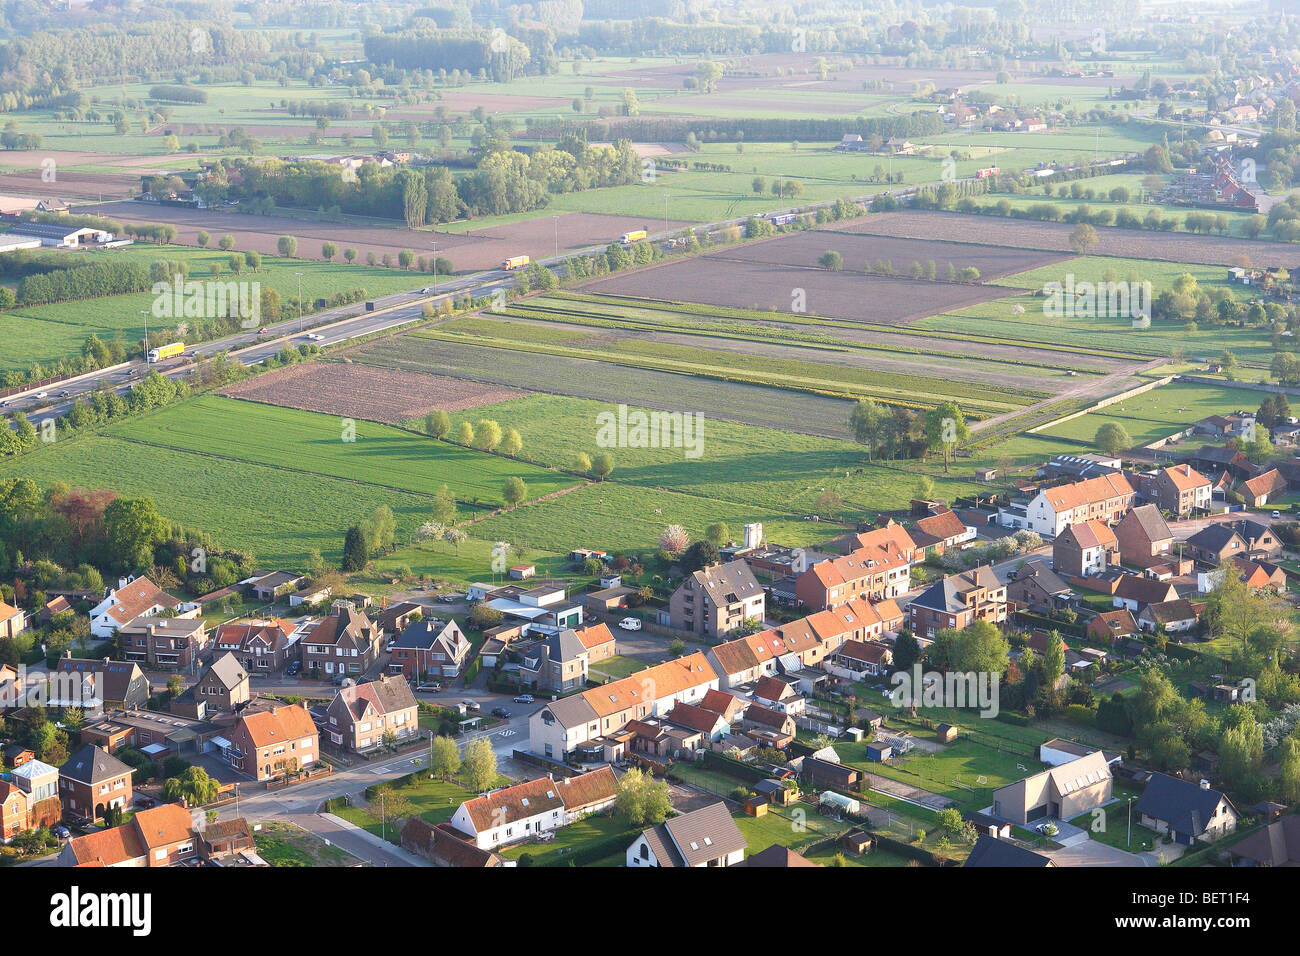 Ribbon development in agricultural area with fields, grasslands and hedges from the air, Belgium - Stock Image